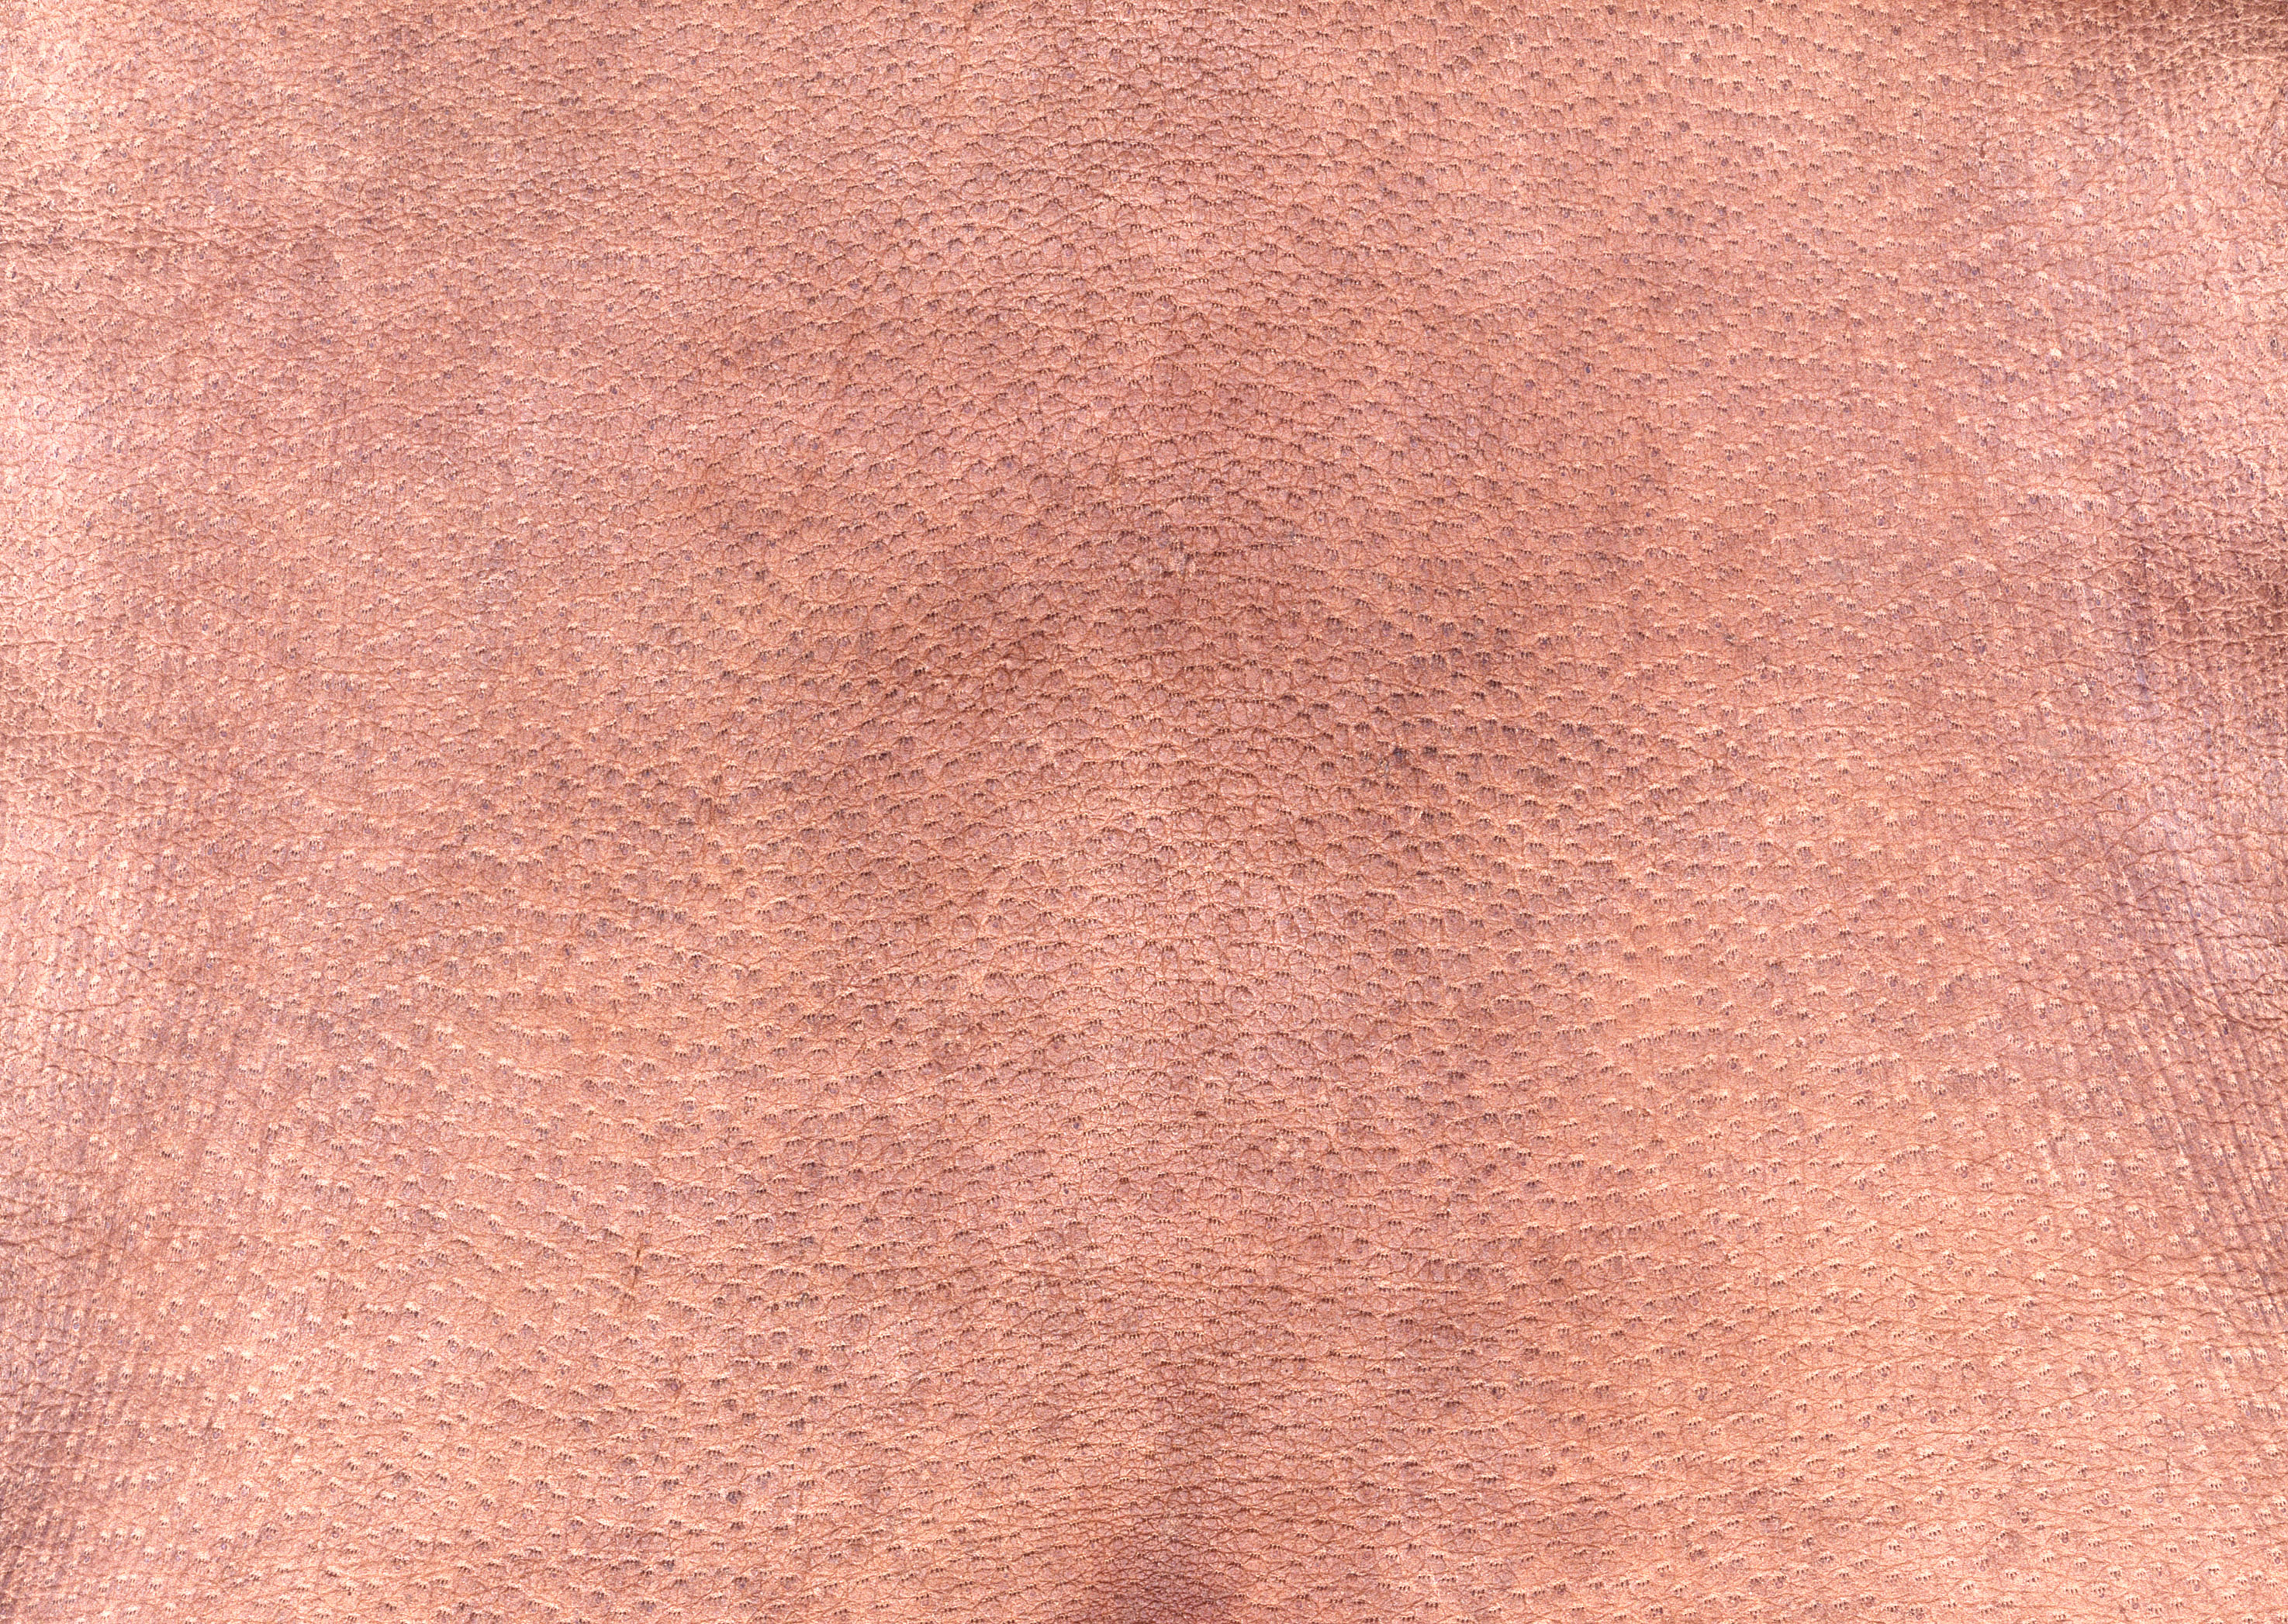 Leather texture background image